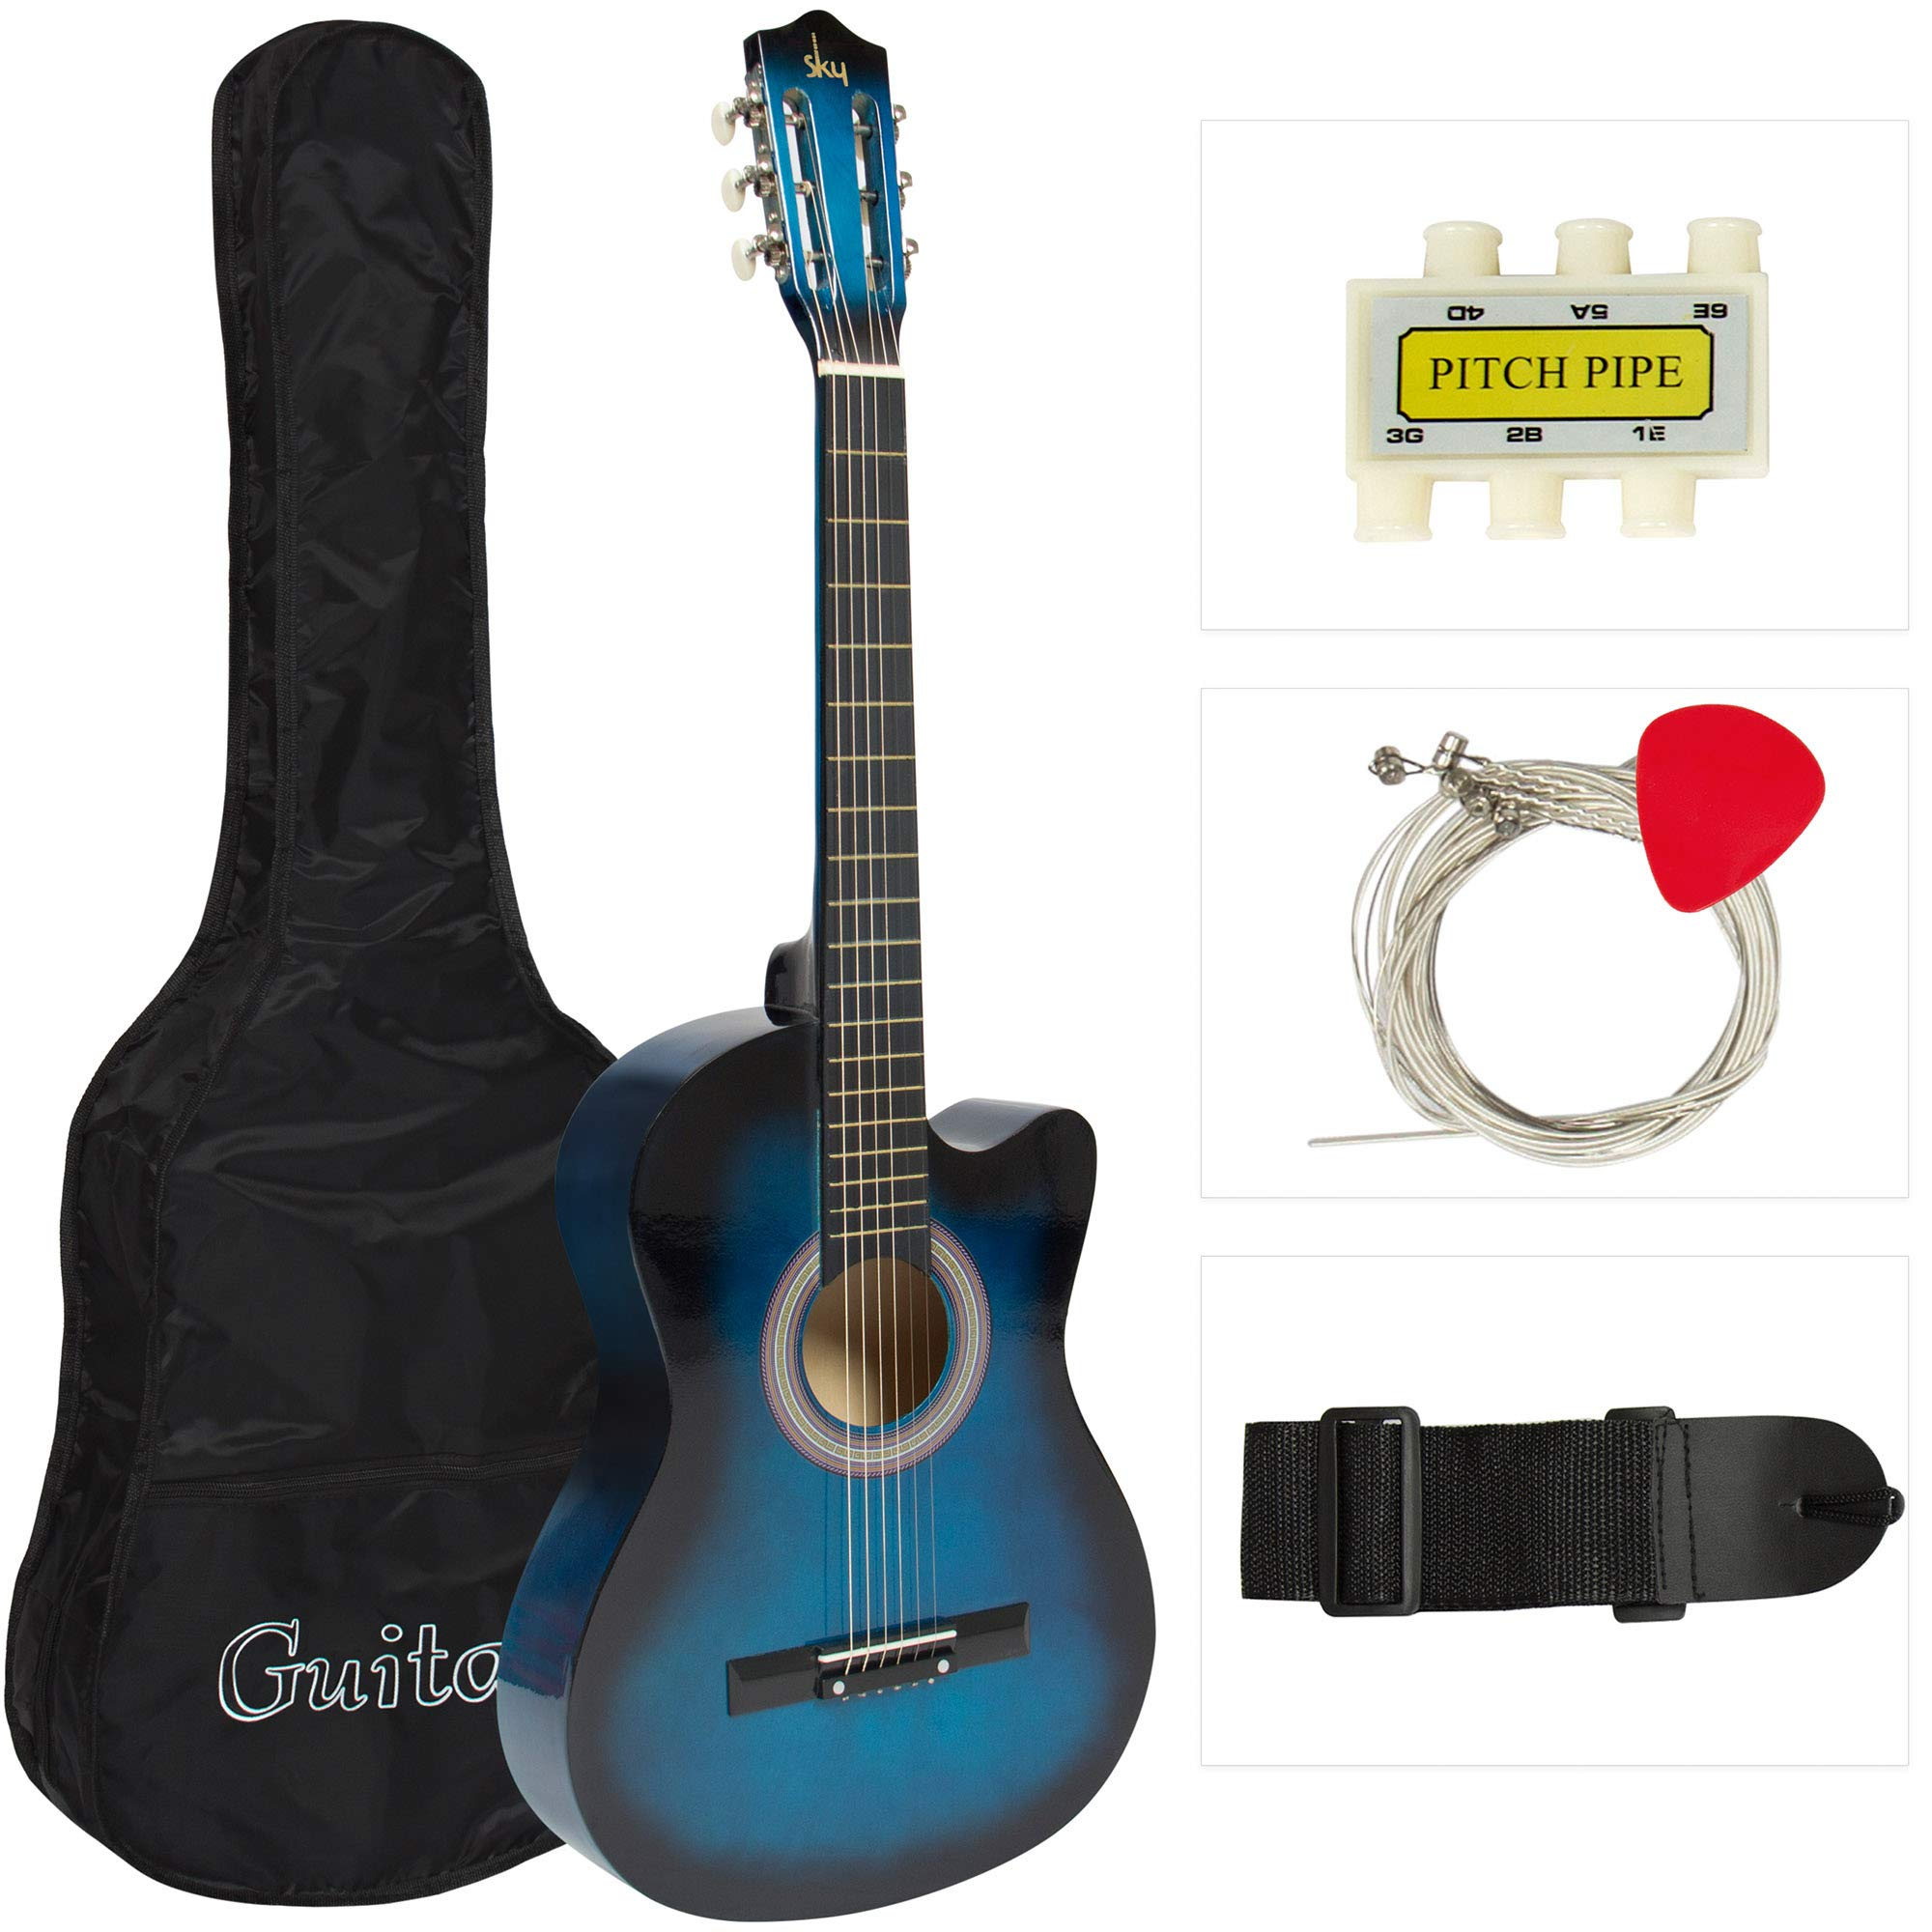 Best Choice Products 38in Beginner Acoustic Cutaway Guitar Set w/ Extra Strings, Case, Strap, Tuner, and Pick - Blue by Best Choice Products (Image #1)